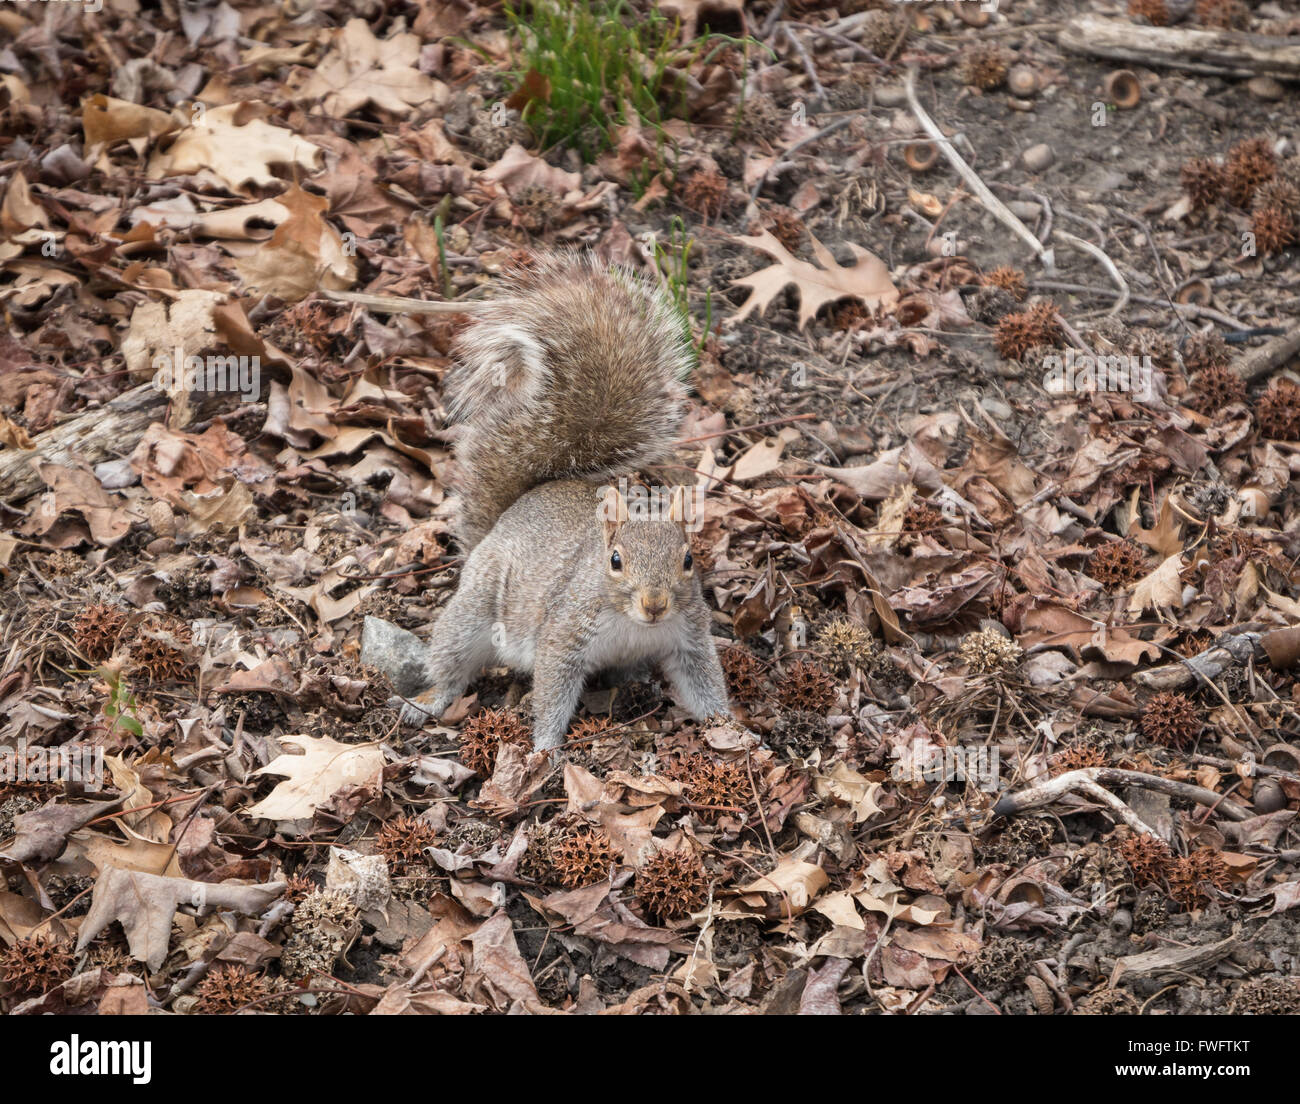 Grey Squirrel (Sciurus carolinensis) looking alert directly at camera on the ground covered with dead leaves in - Stock Image